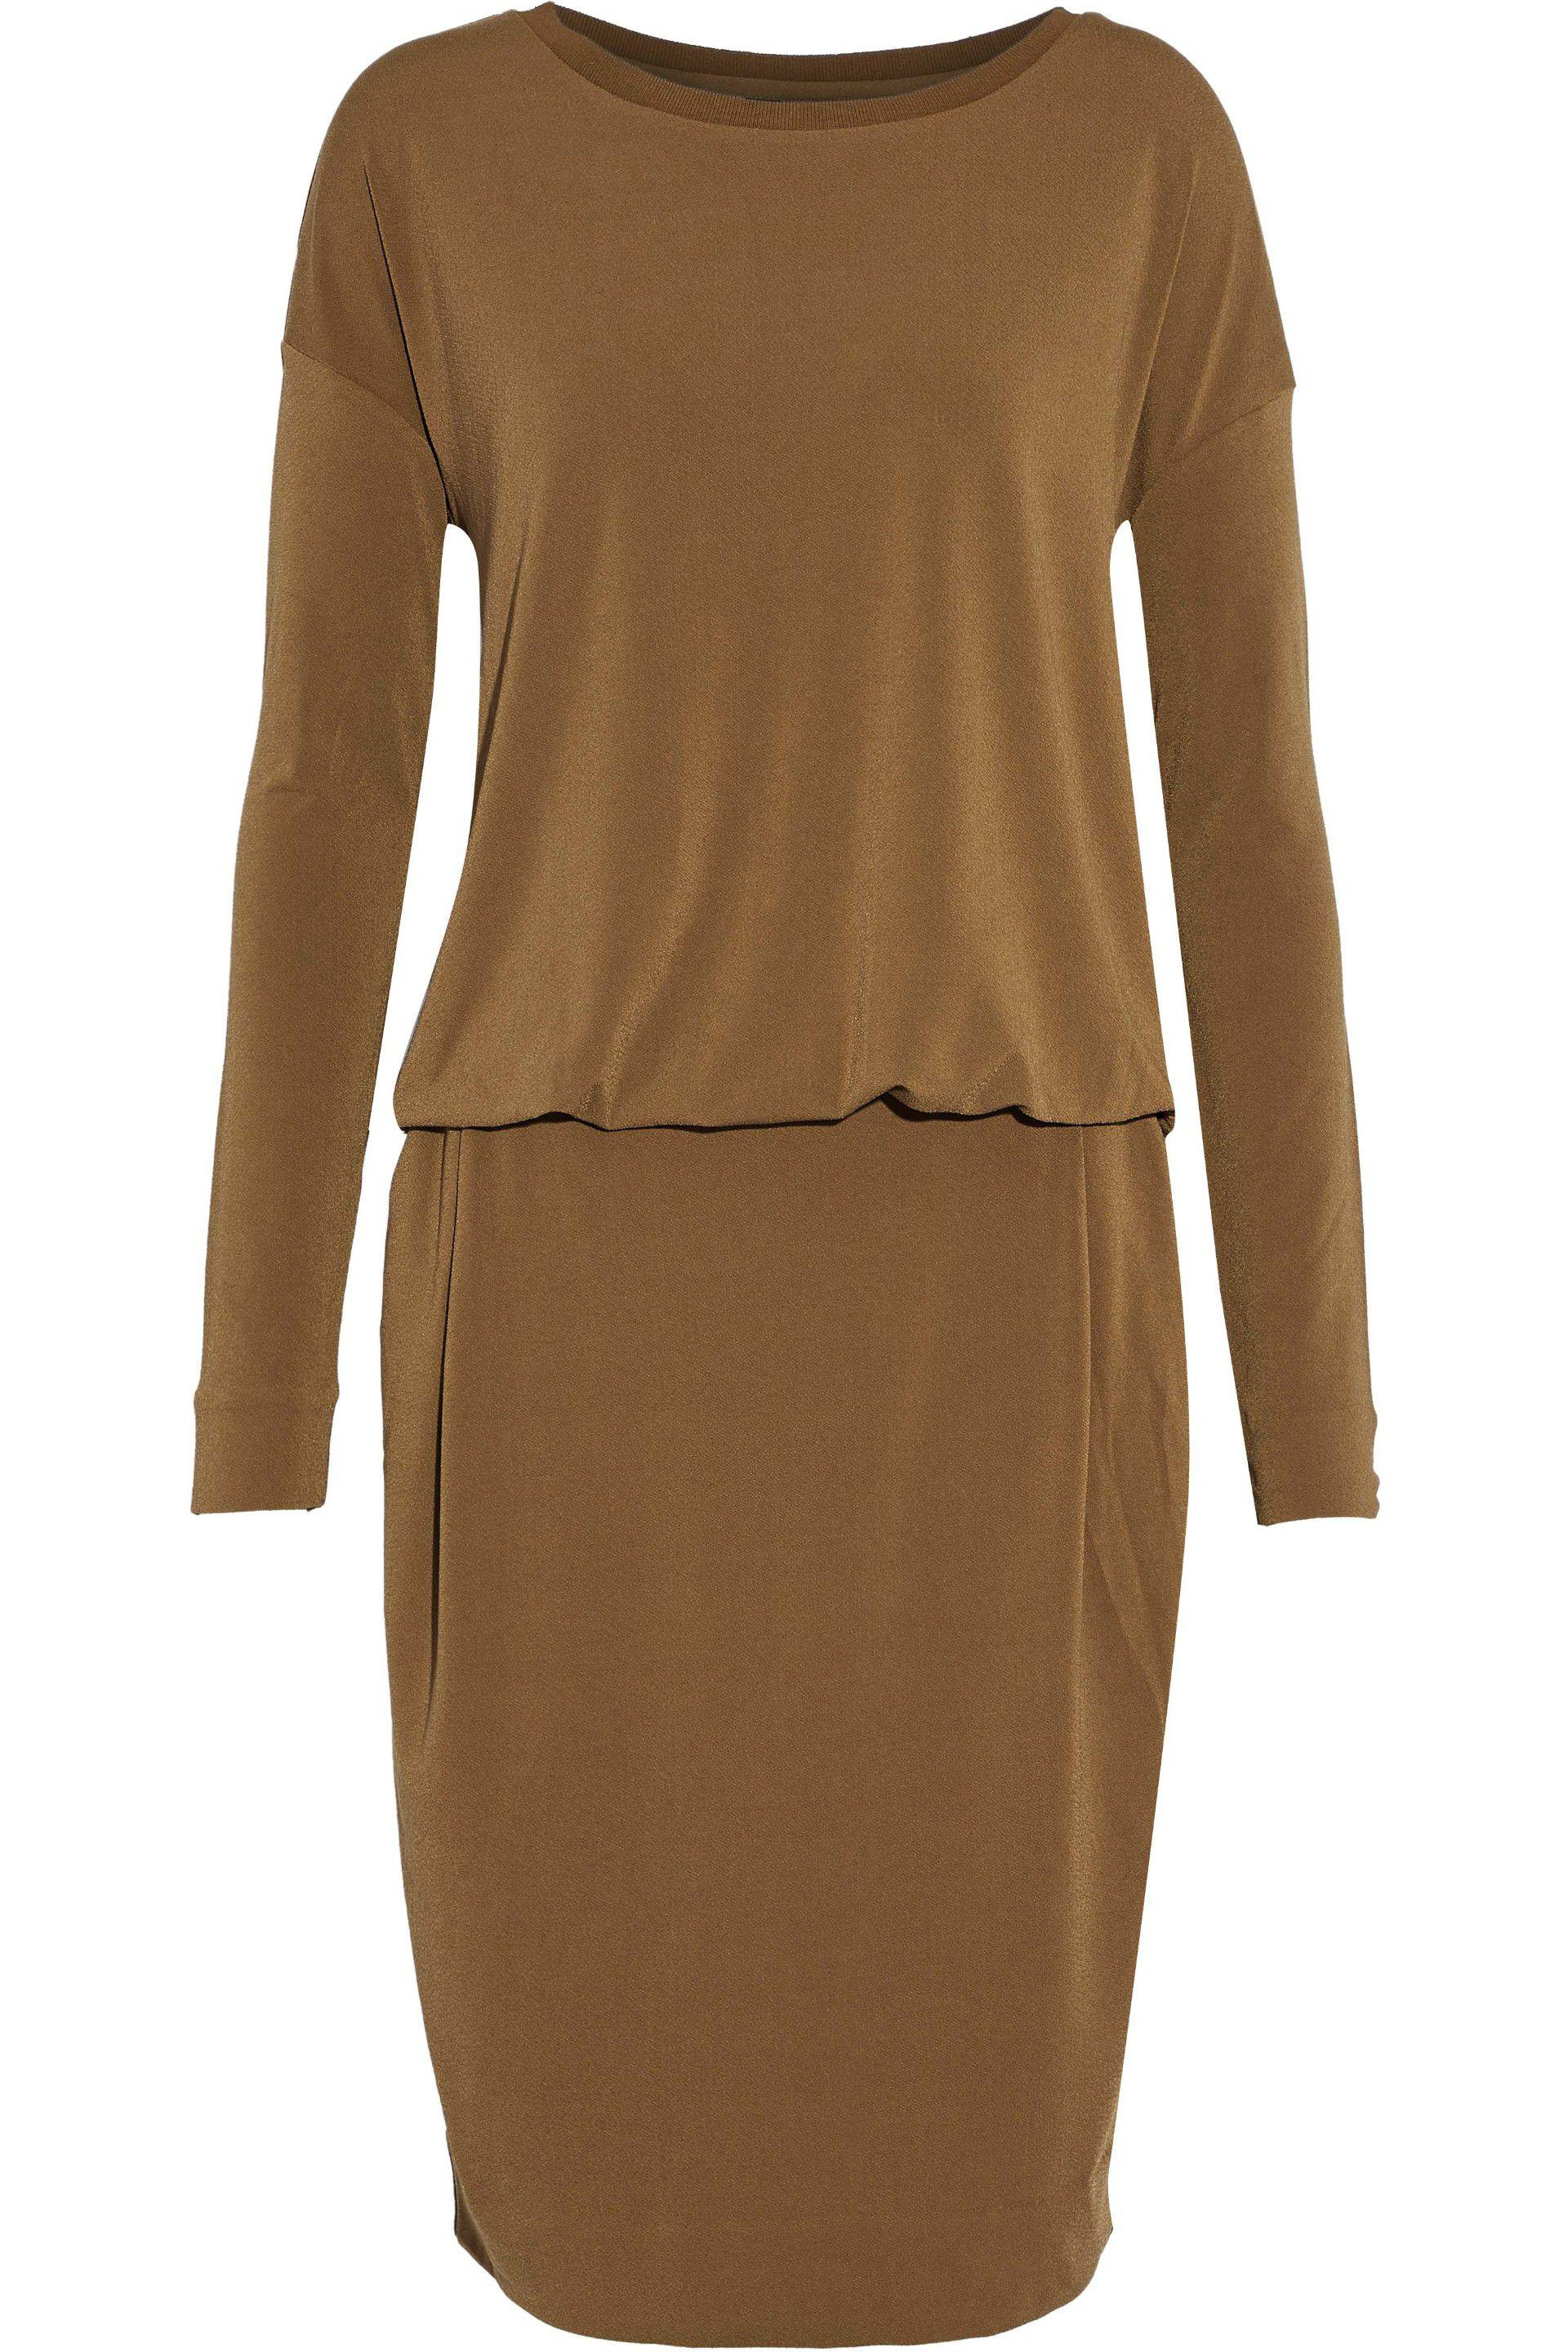 By Malene Birger Woman Cutout Draped Stretch-crepe Dress Light Brown Size M By Malene Birger Avdgwi31